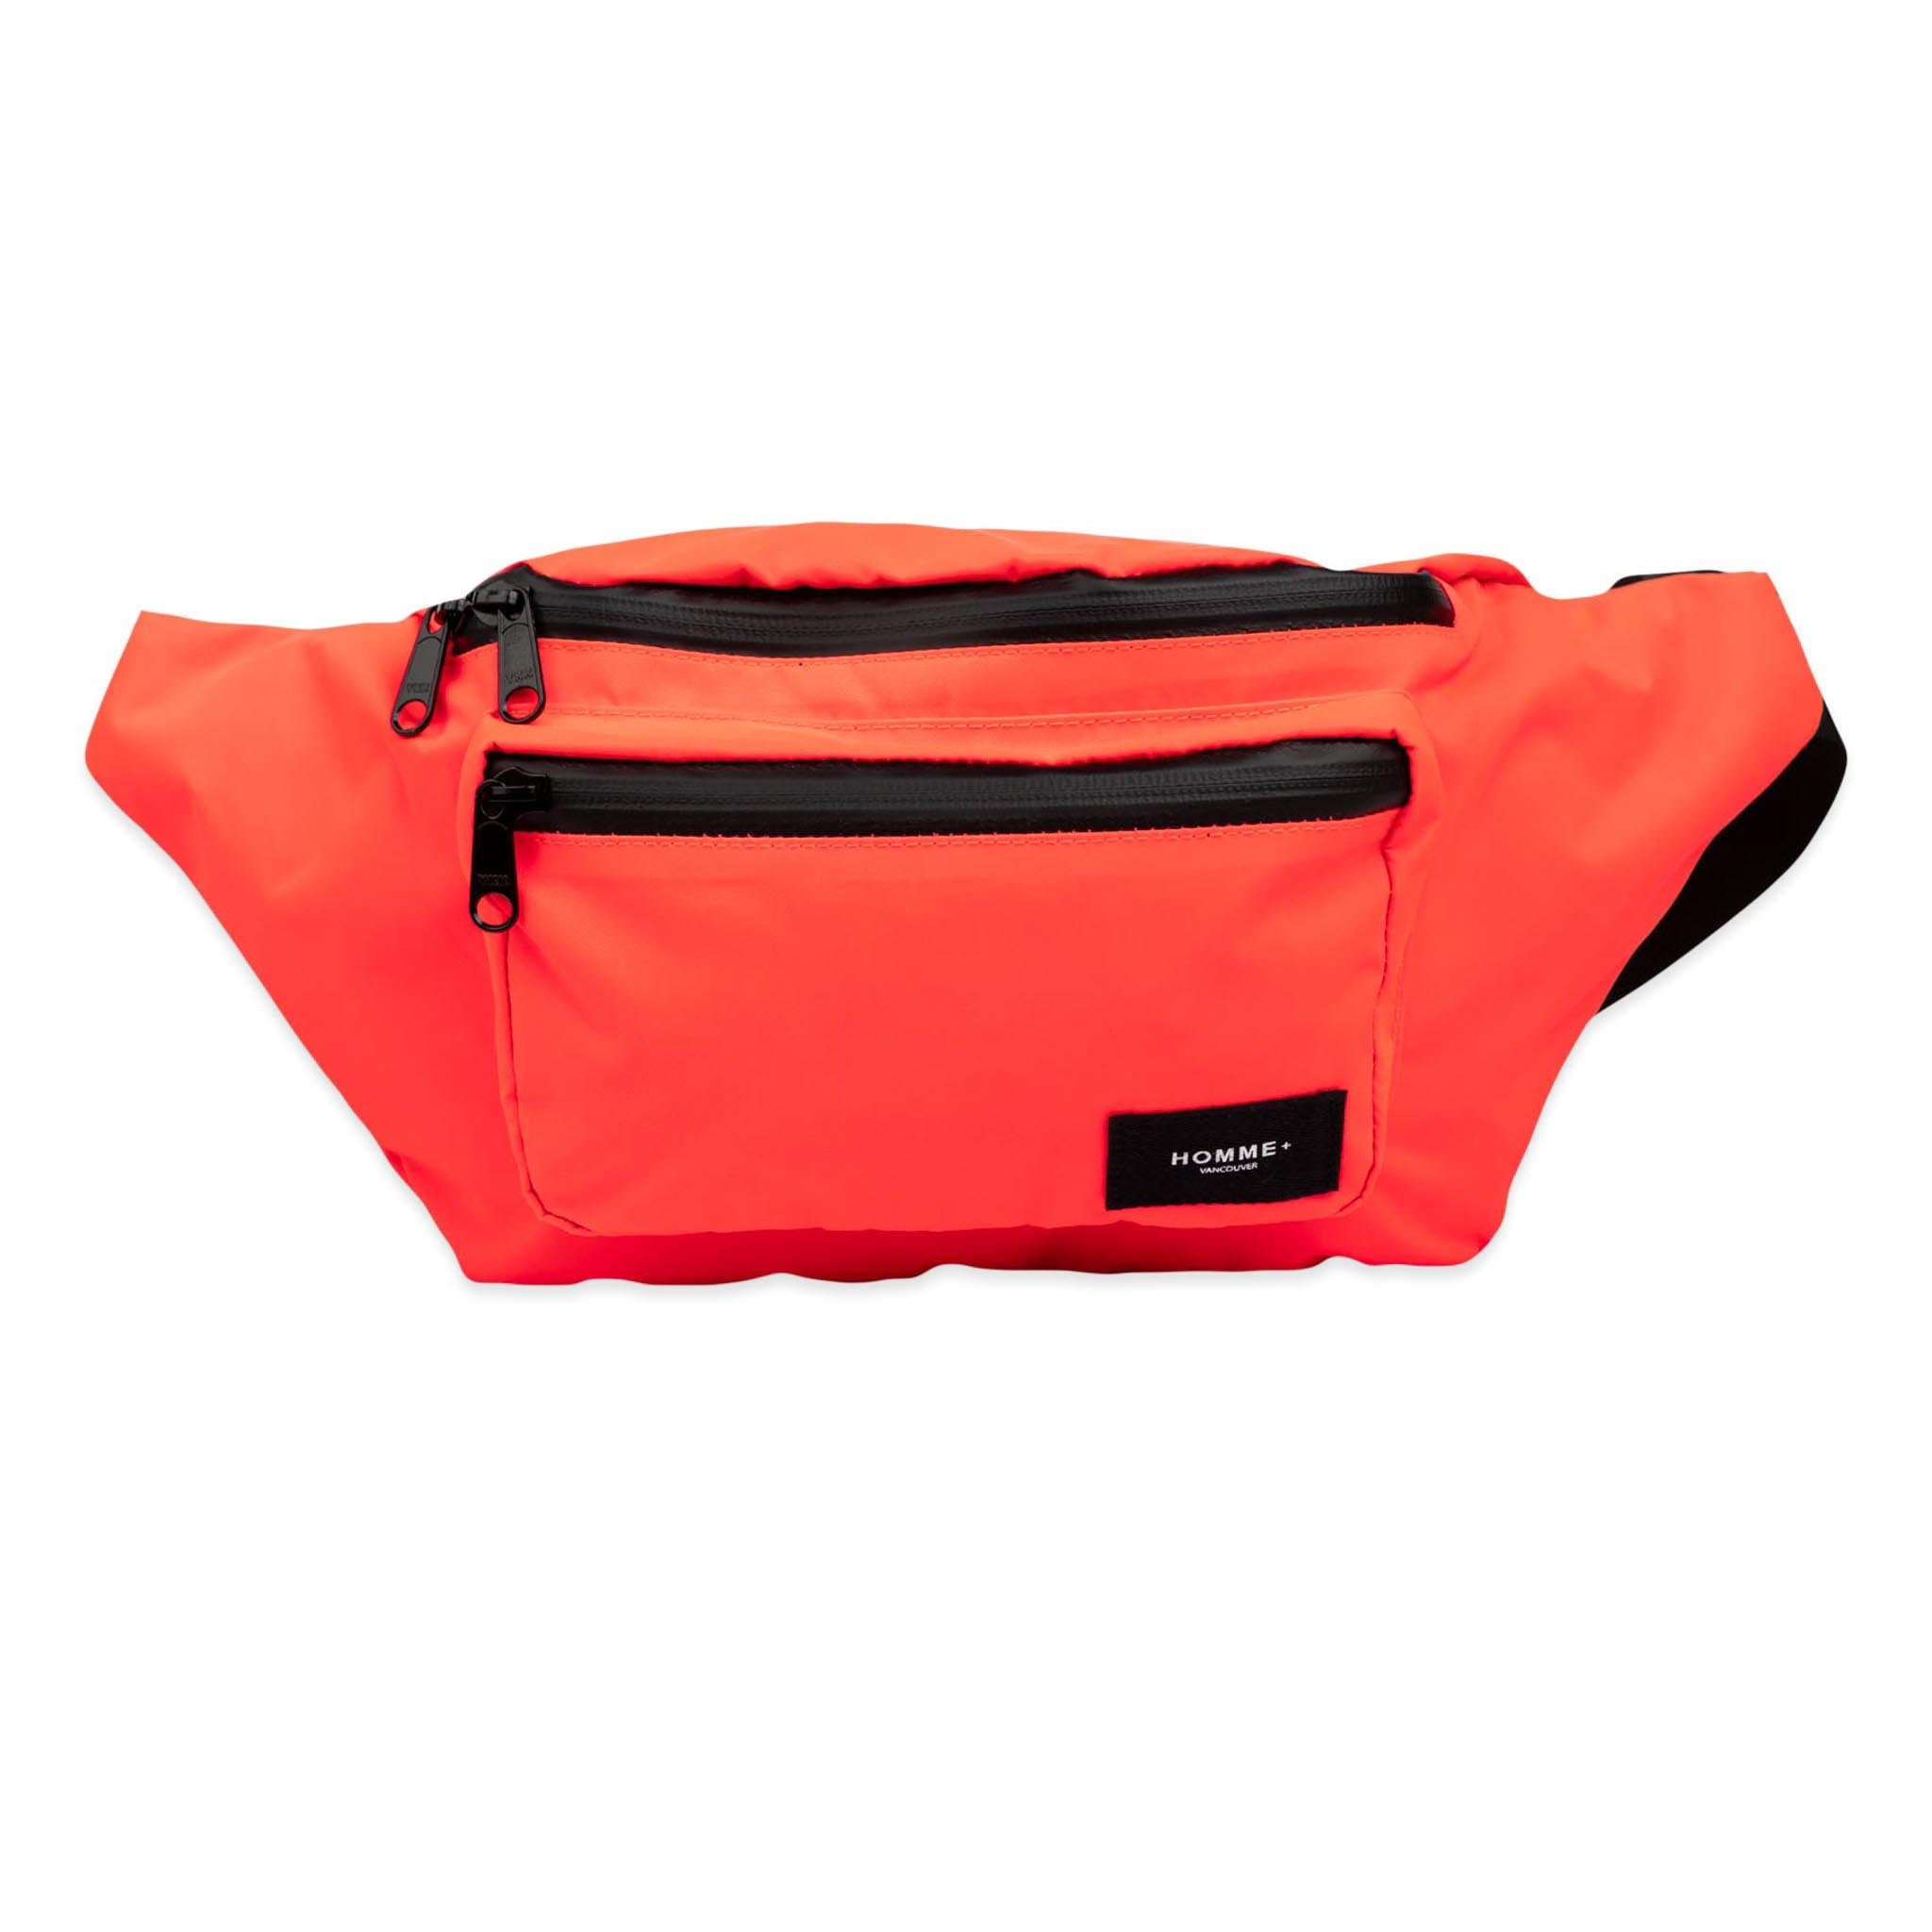 HOMME+ Large Nylon Waist Pack Infrared